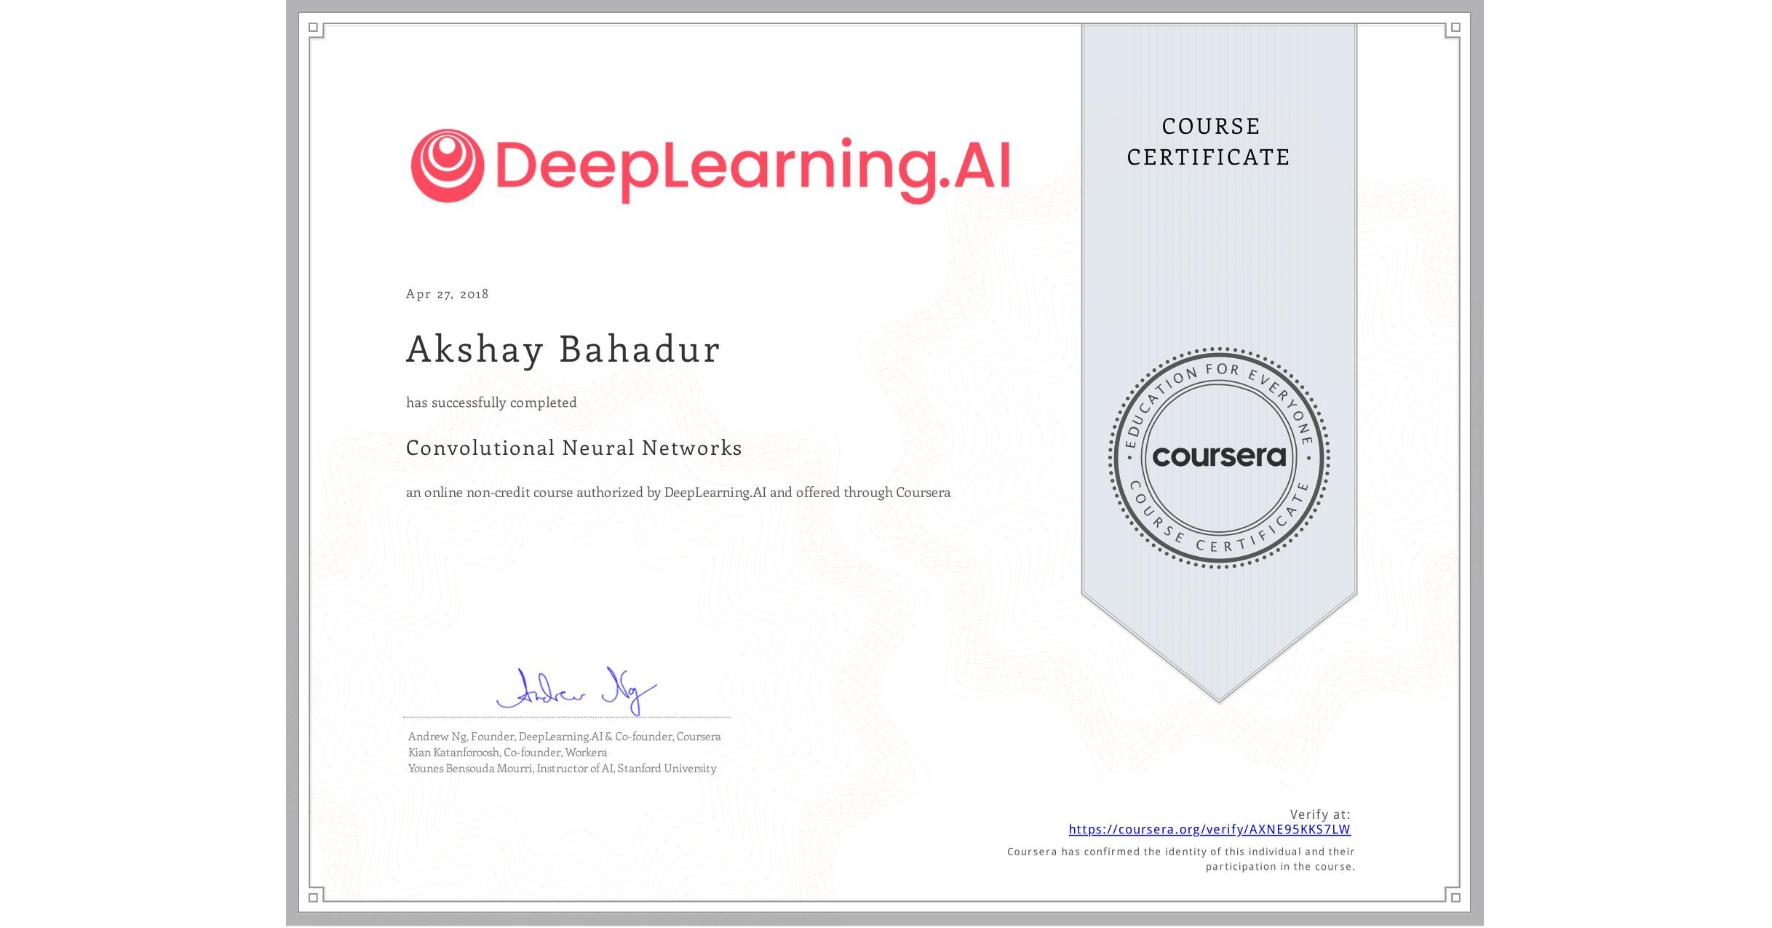 View certificate for Akshay Bahadur, Convolutional Neural Networks, an online non-credit course authorized by DeepLearning.AI and offered through Coursera